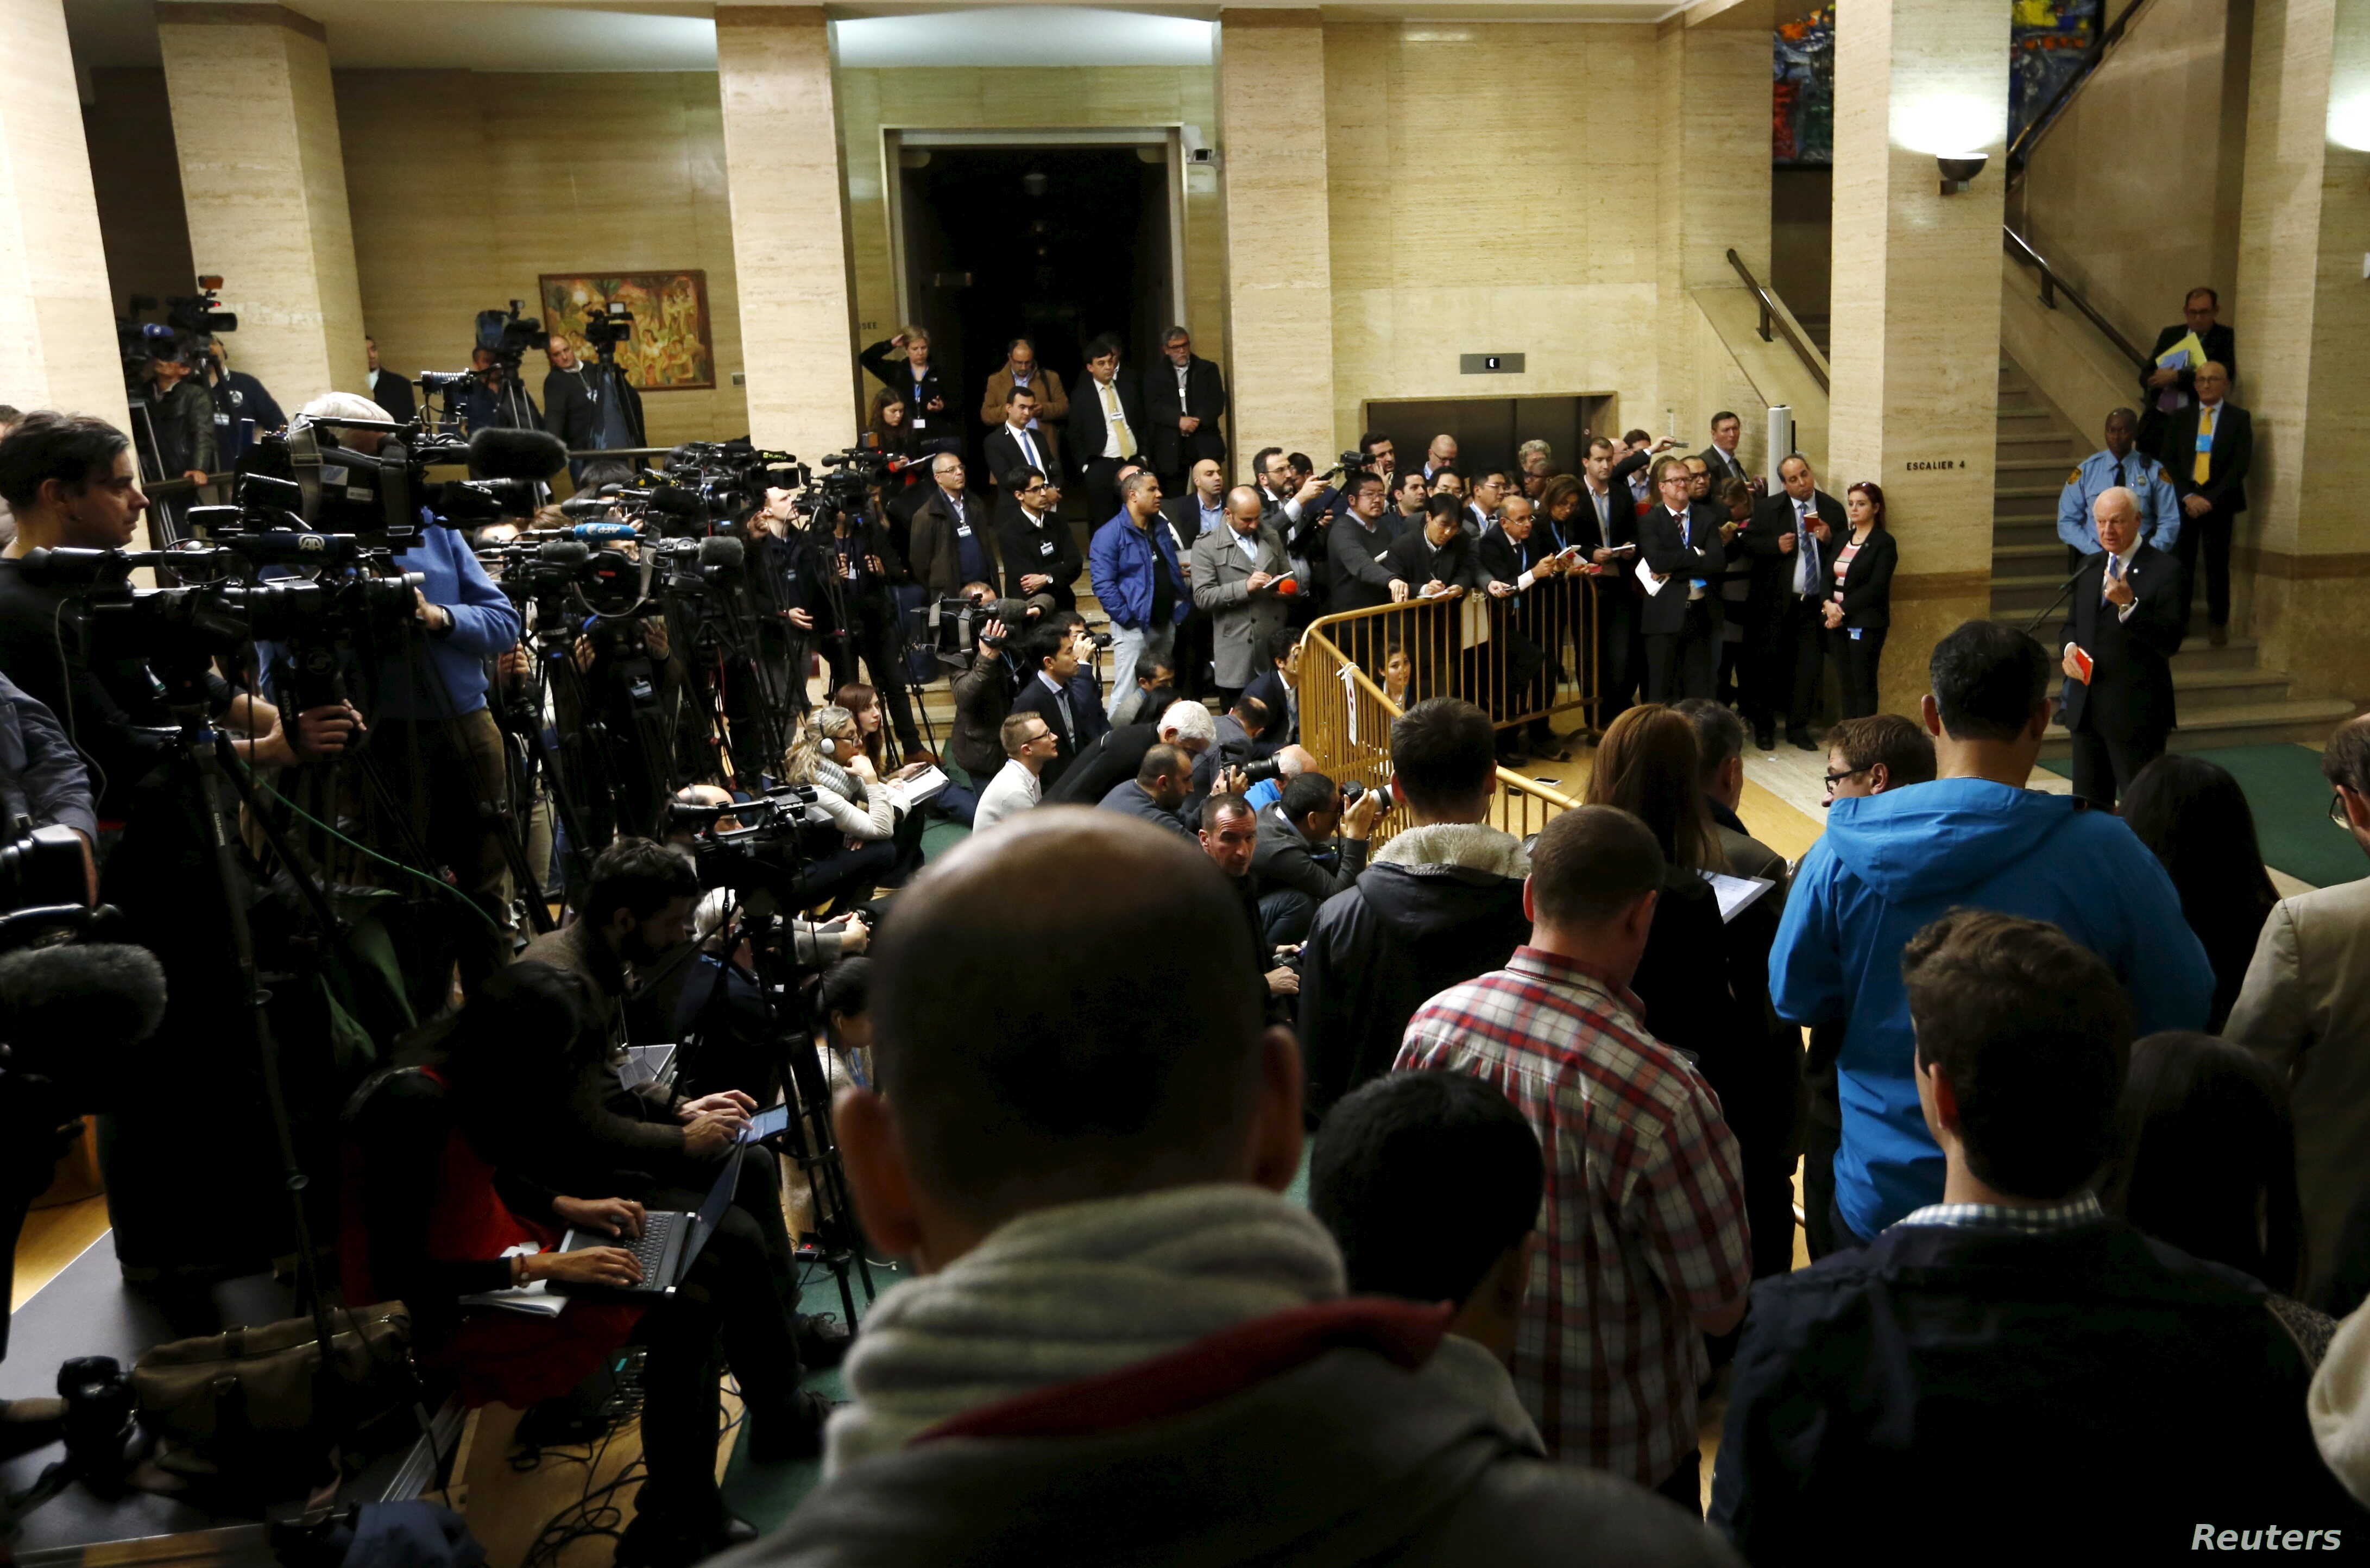 U.N. mediator for Syria Staffan de Mistura delivers a statement after the opening of the Syrian peace talks at the United Nations European headquarters in Geneva, Switzerland, Jan. 29, 2016.